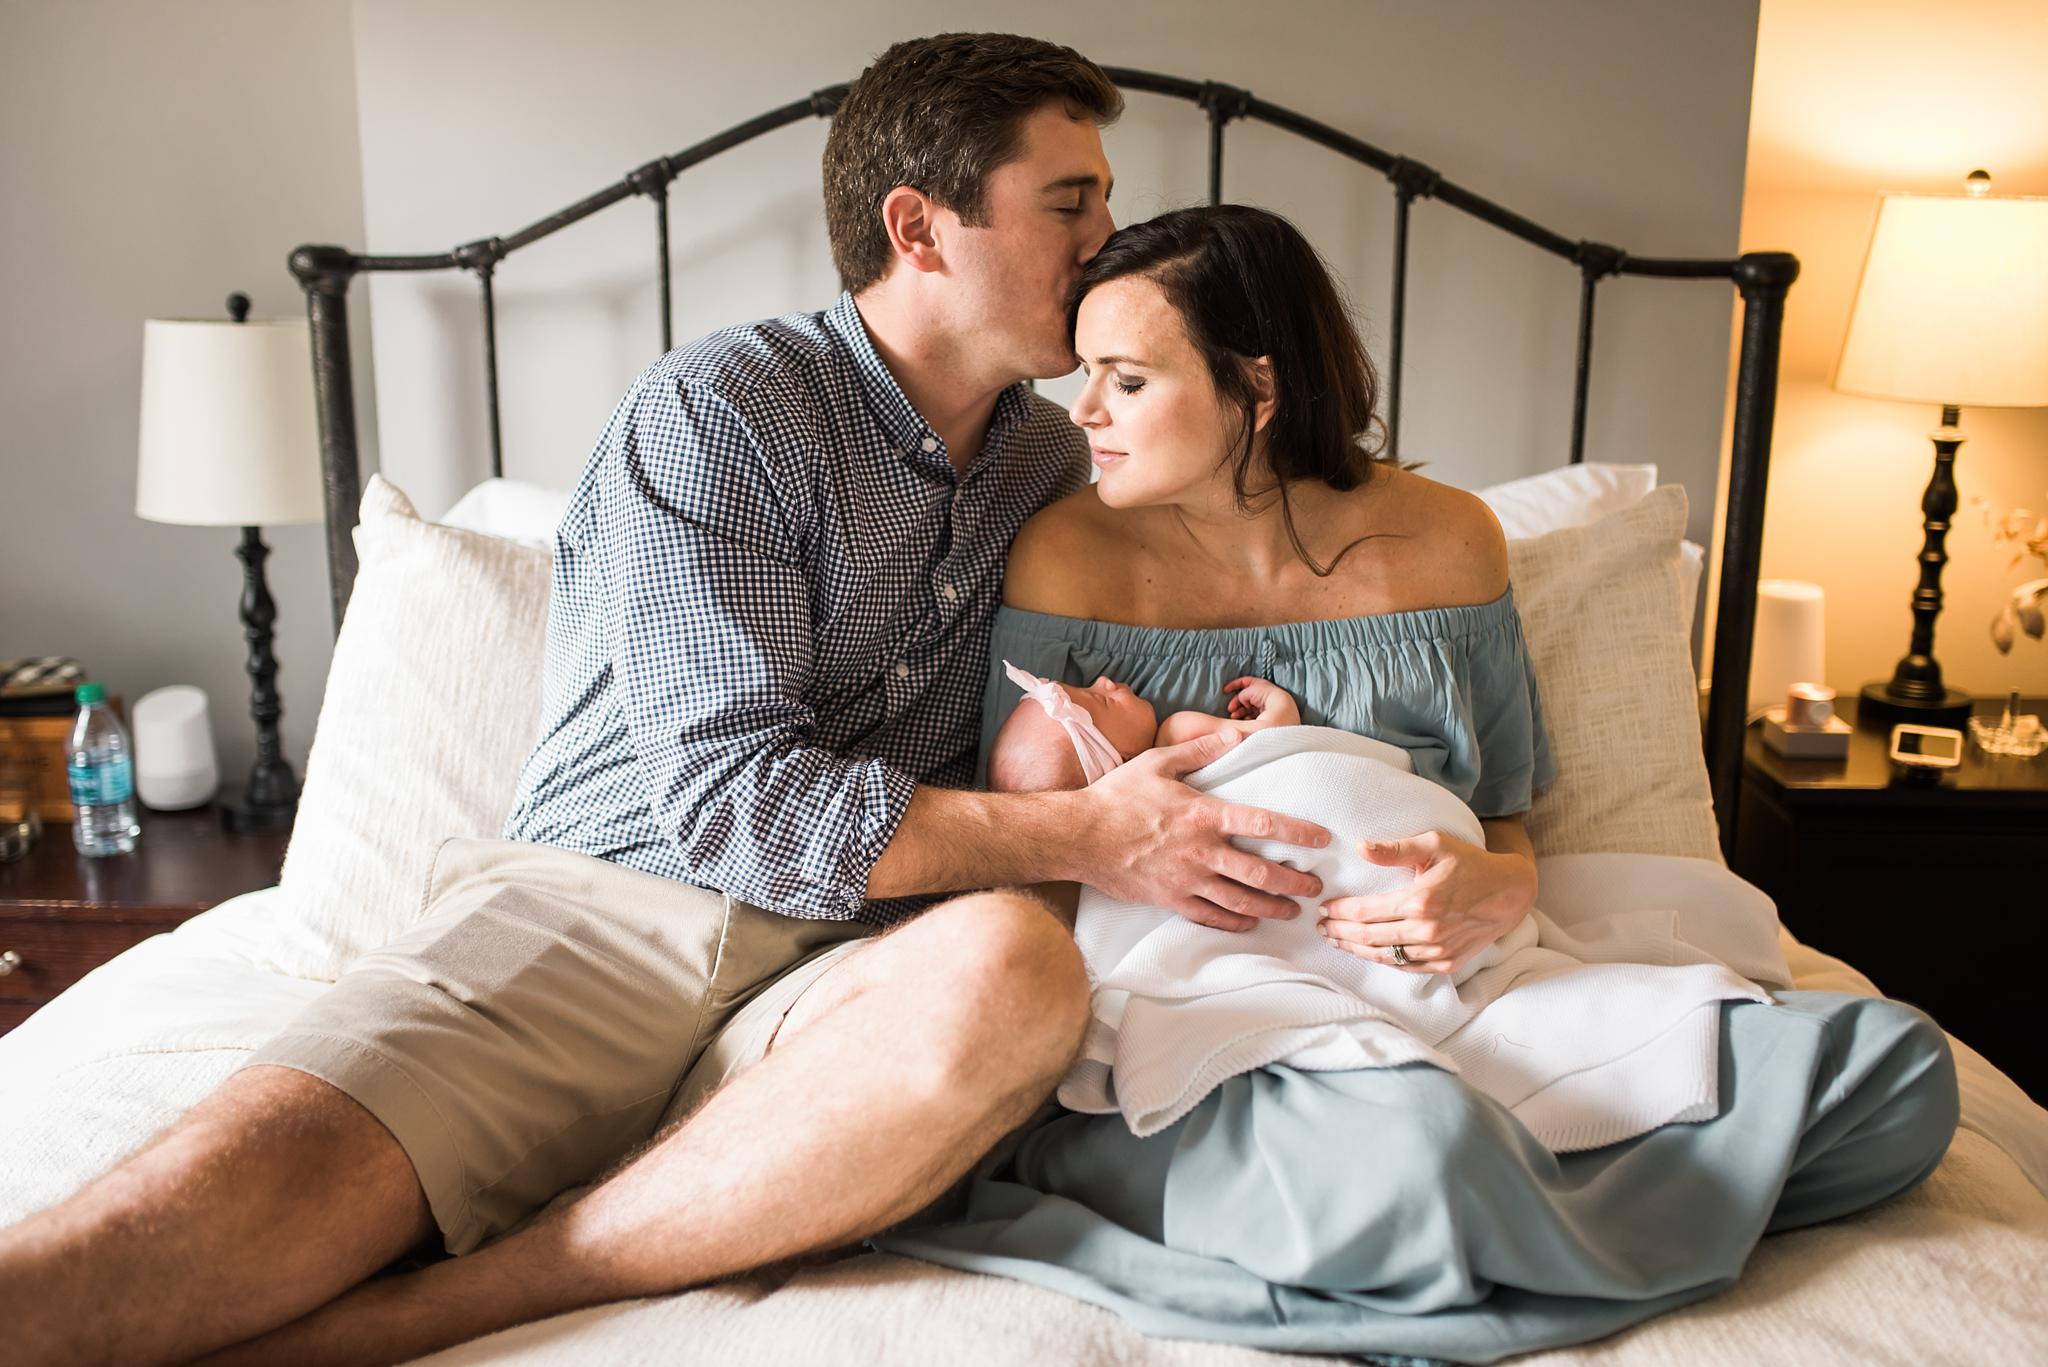 Family Newborn Lifestyle Photography Pittsburgh Rachel Rossetti_0032.jpg